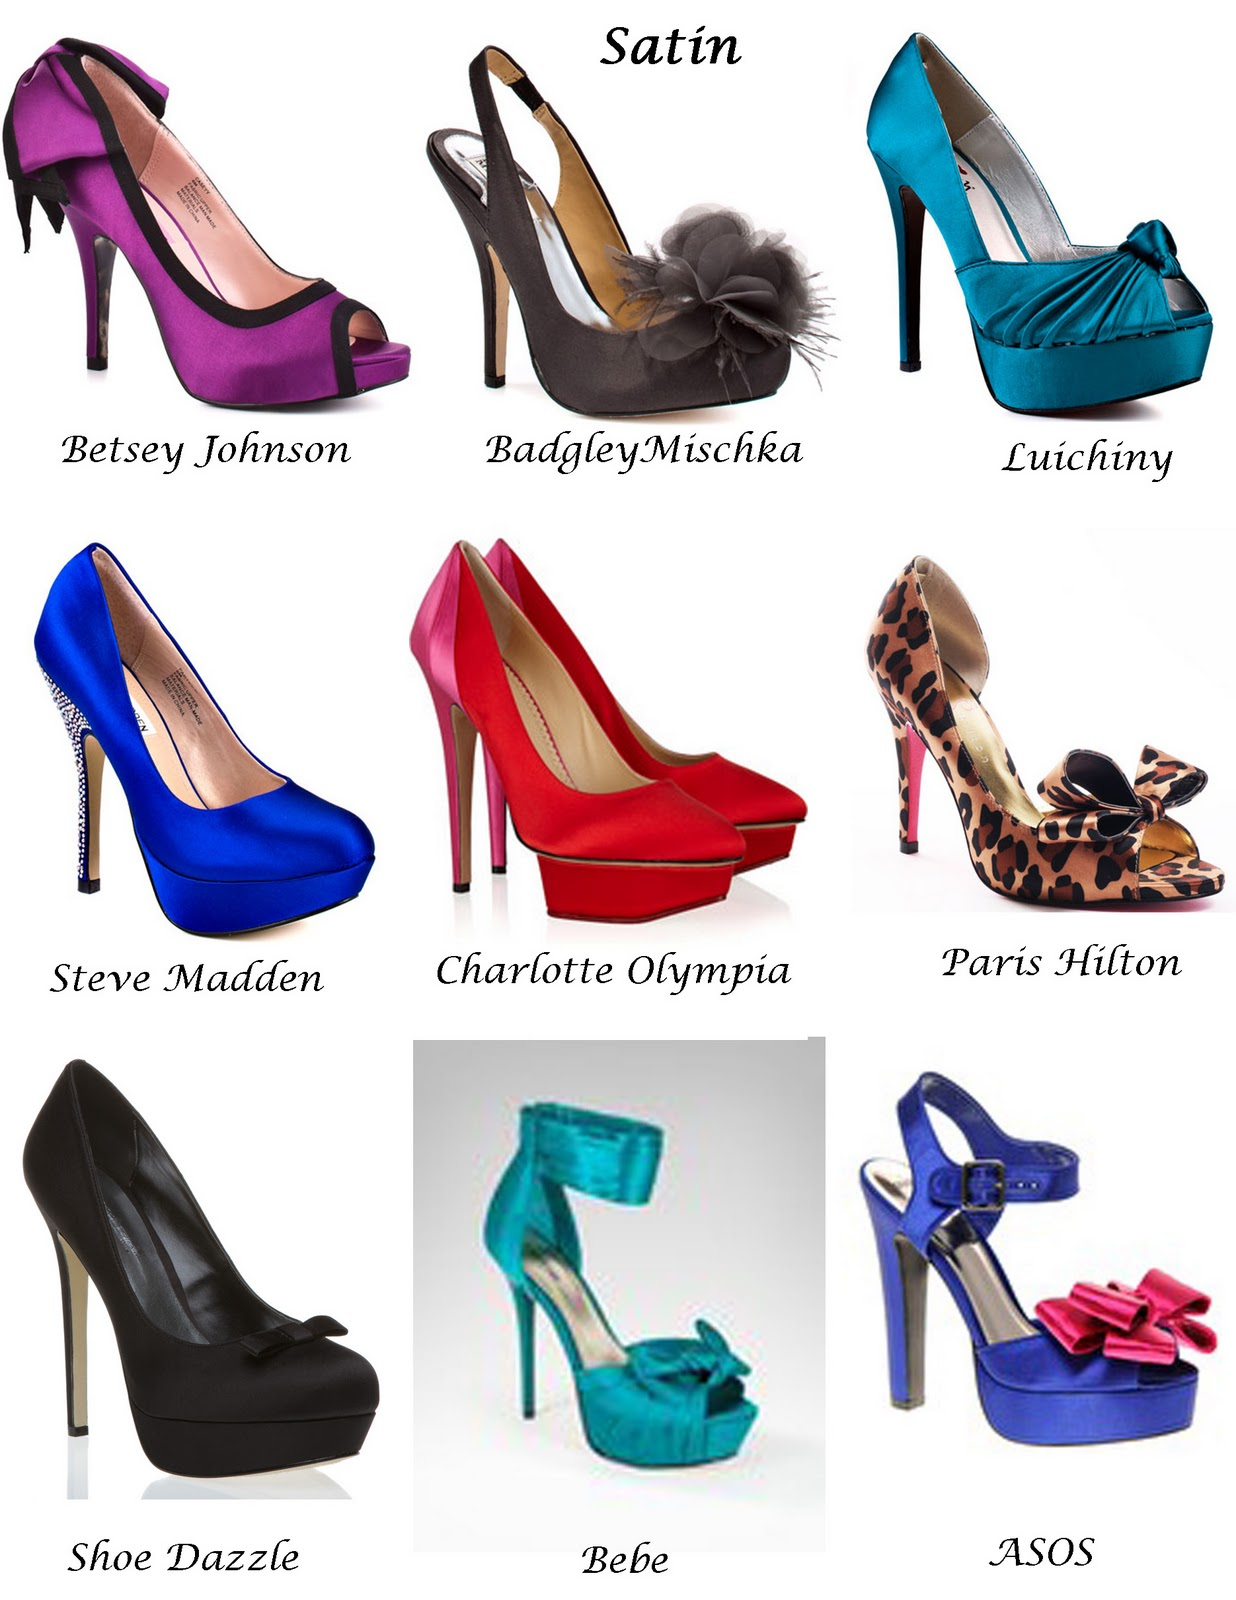 What Size Shoe Does Tyra Banks Wear